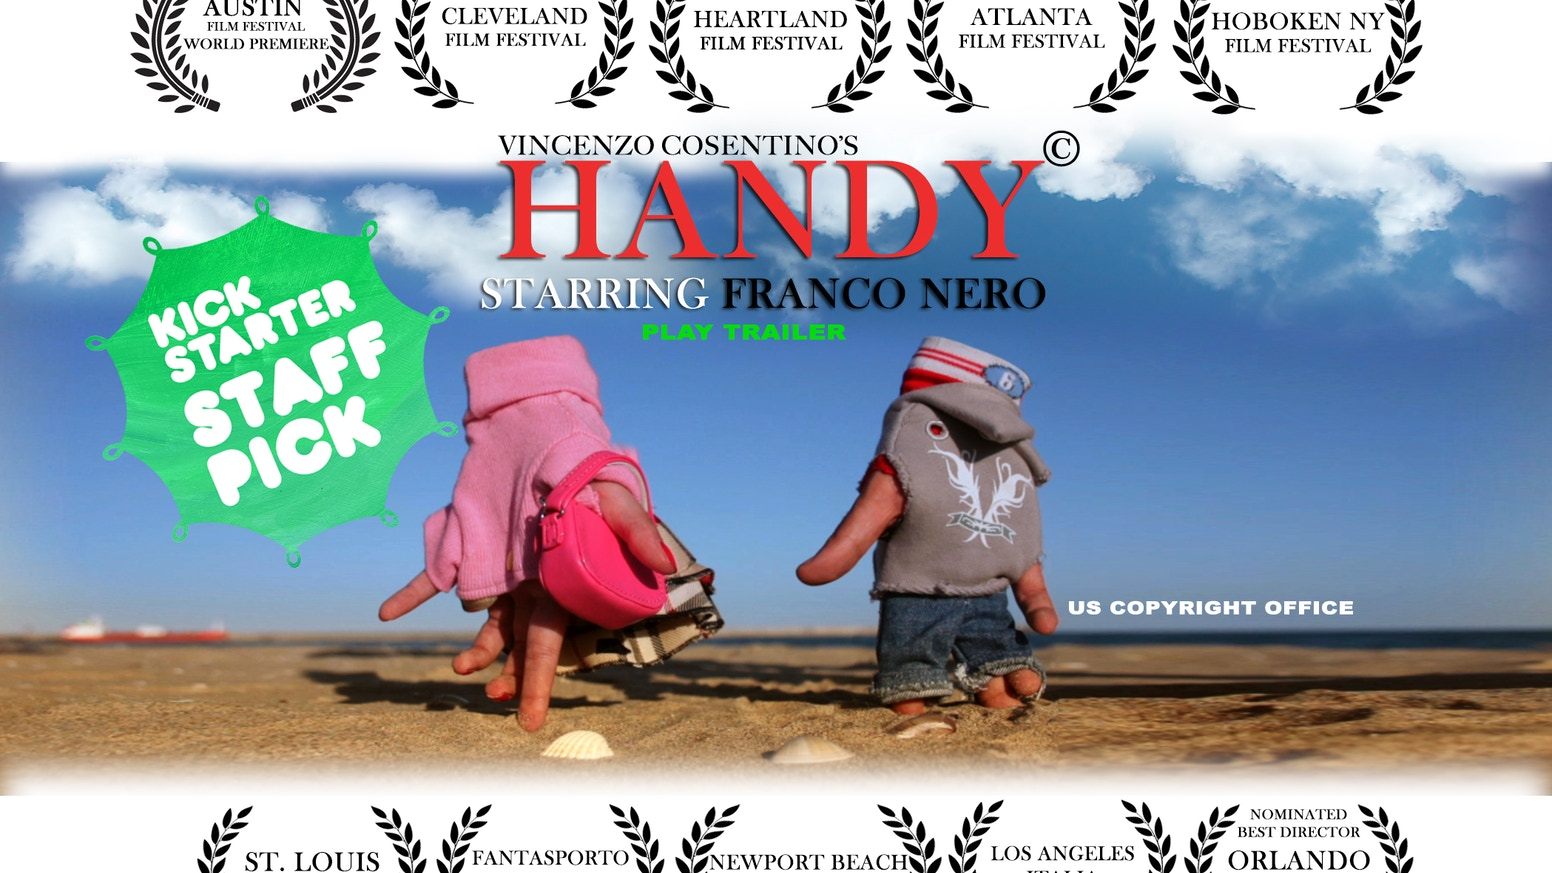 Handy Starring Franco Nero By Vincenzo Cosentino Short Circuit Movie Posters From Poster Shop Be Part Of The Handependence Day A Unique Film That Needs Your Hand To Reach